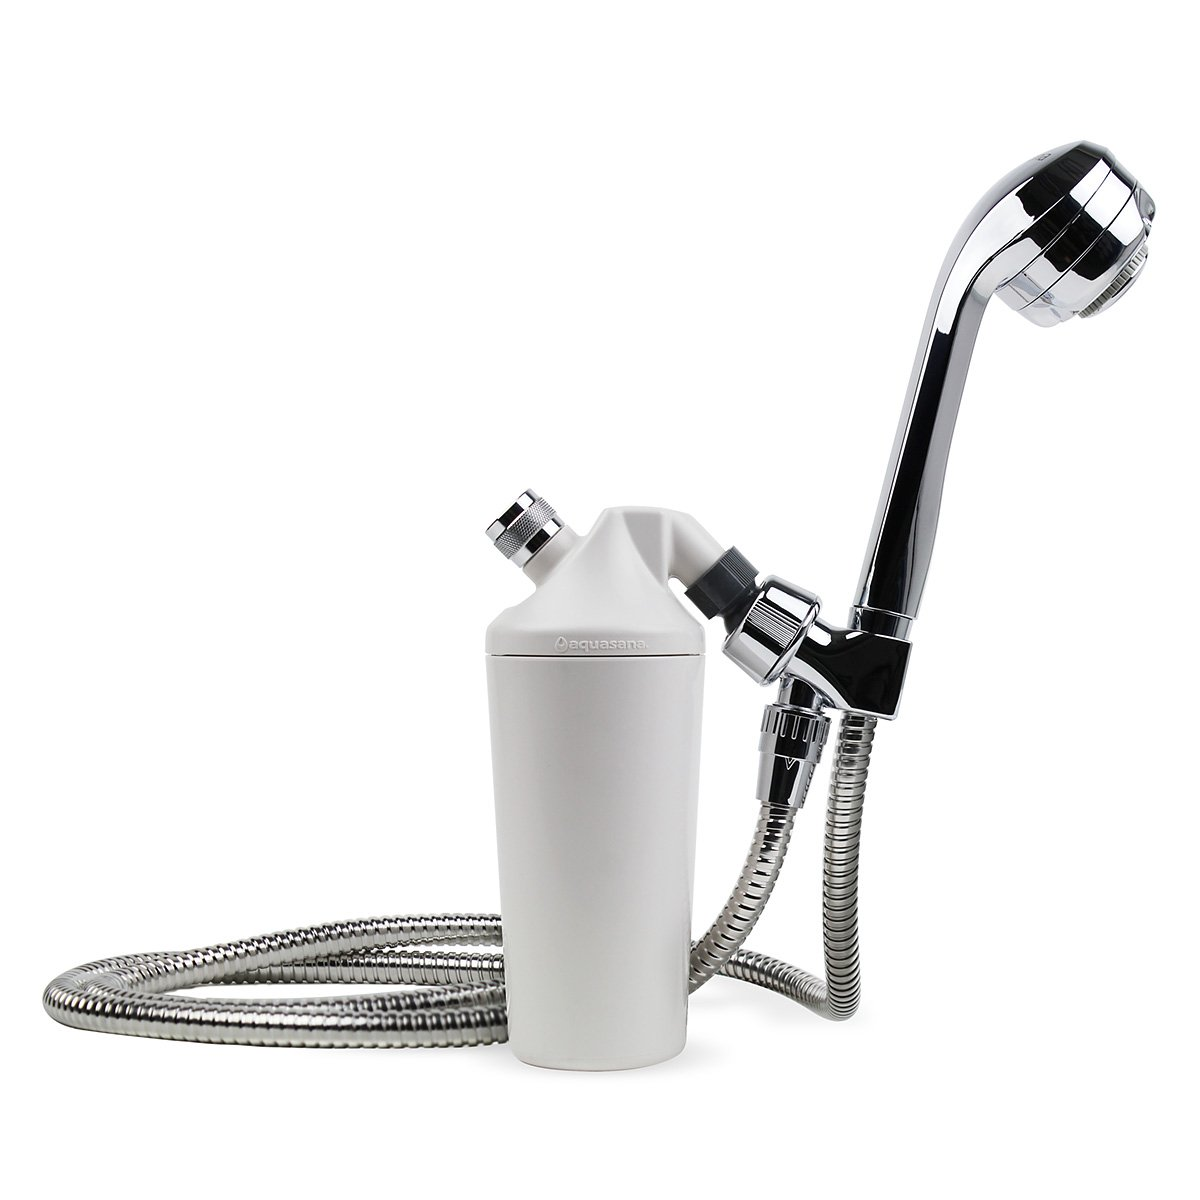 shower head filter system filtration with handheld wand chrome aquasana aq 4105 ebay. Black Bedroom Furniture Sets. Home Design Ideas